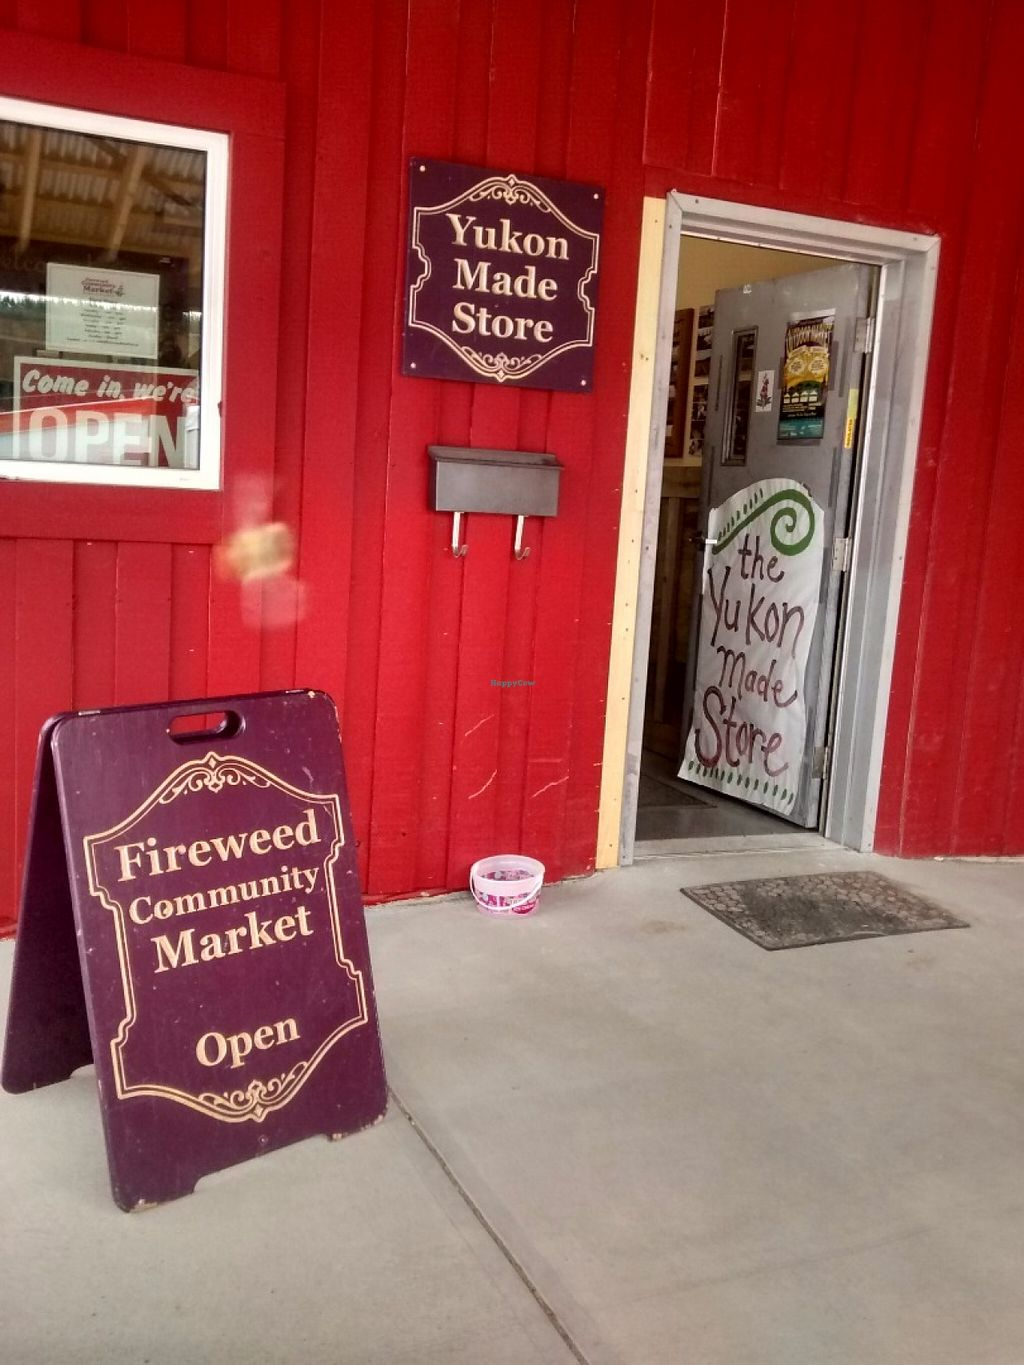 "Photo of Fireweed Community Market   by <a href=""/members/profile/QuothTheRaven"">QuothTheRaven</a> <br/>Market store by Farmer Roberts  <br/> June 24, 2016  - <a href='/contact/abuse/image/75106/155809'>Report</a>"